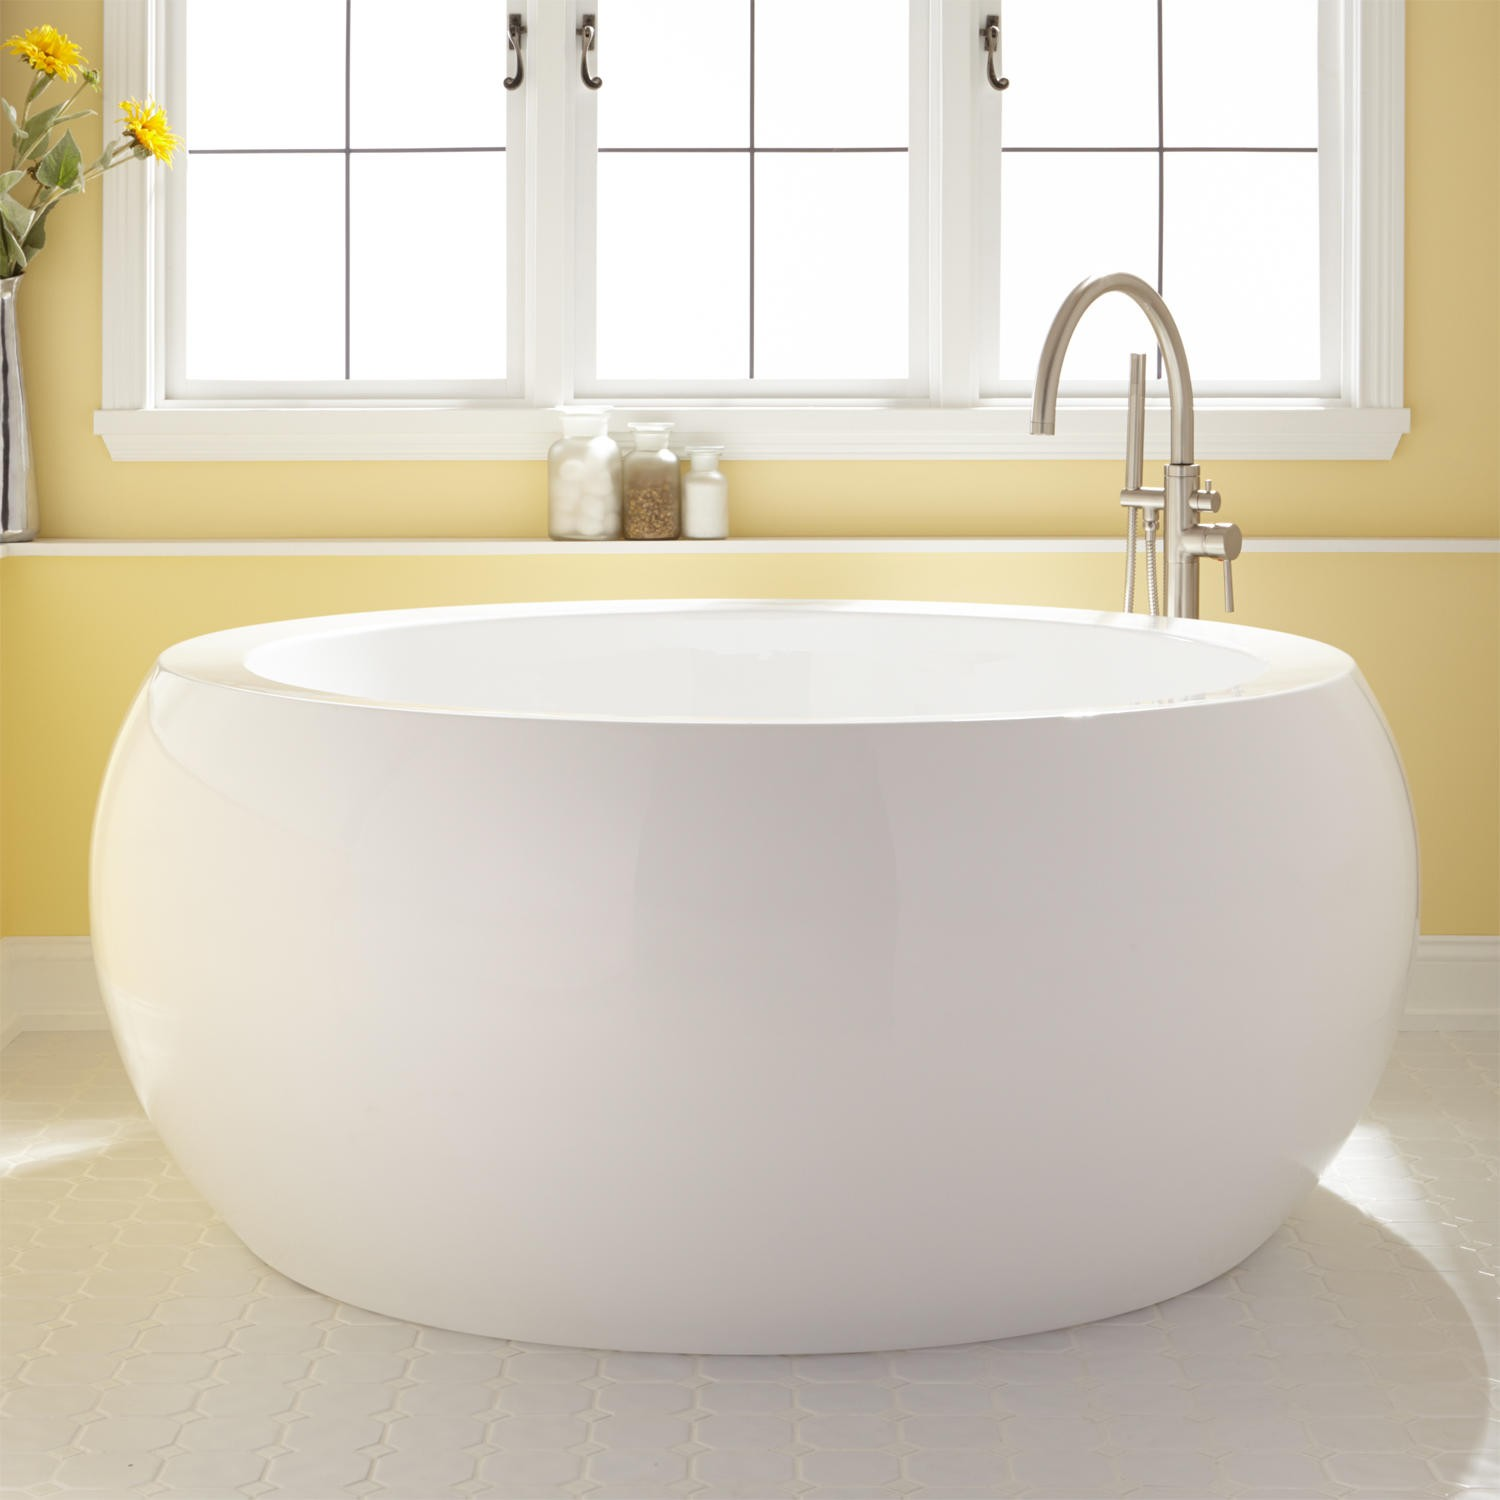 siglo round japanese soaking tub - Ofuro Soaking Tubs: The Vibe Of ...